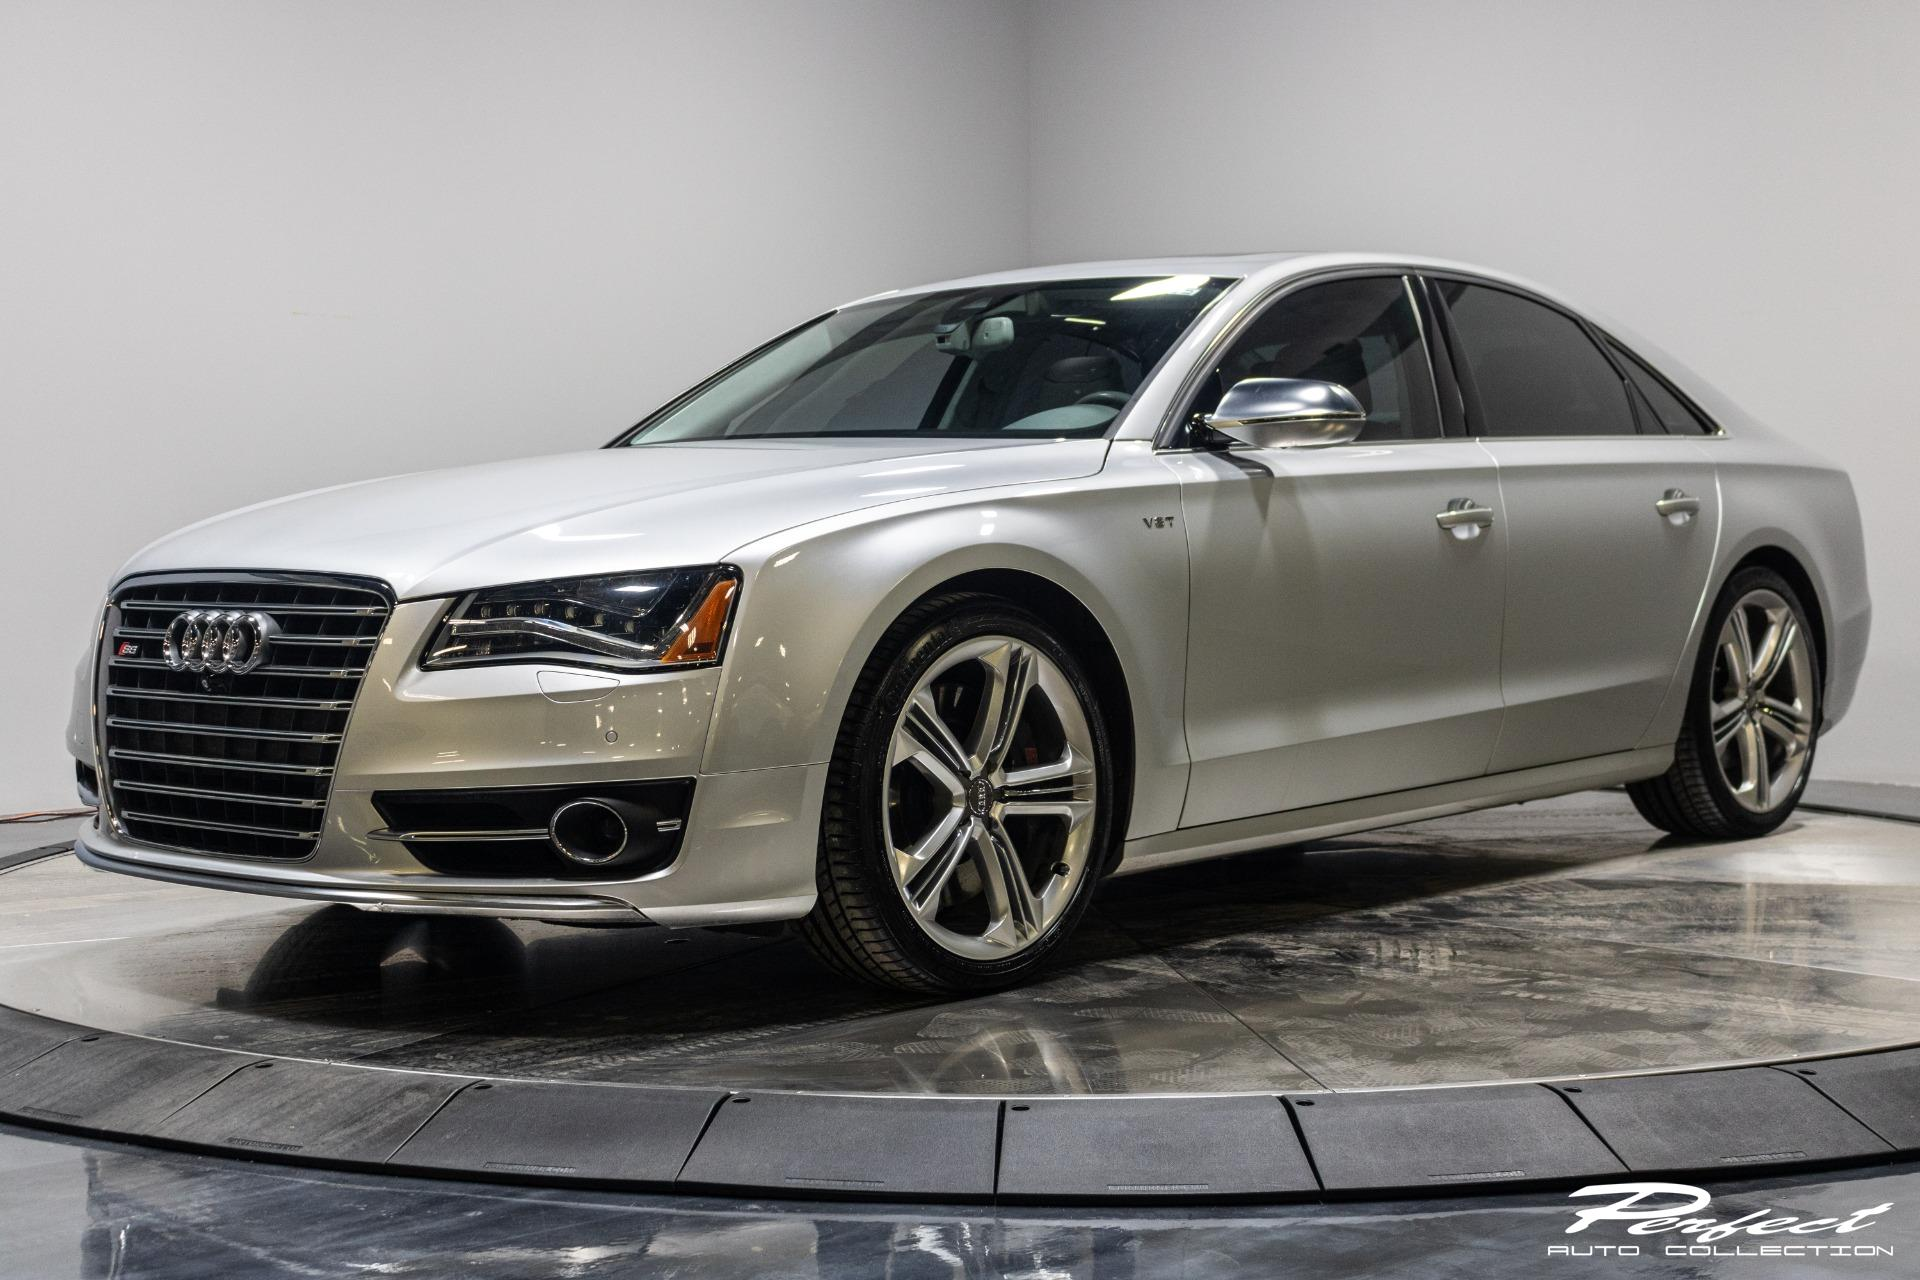 Used 2014 Audi S8 Sedan 4D for sale Sold at Perfect Auto Collection in Akron OH 44310 1